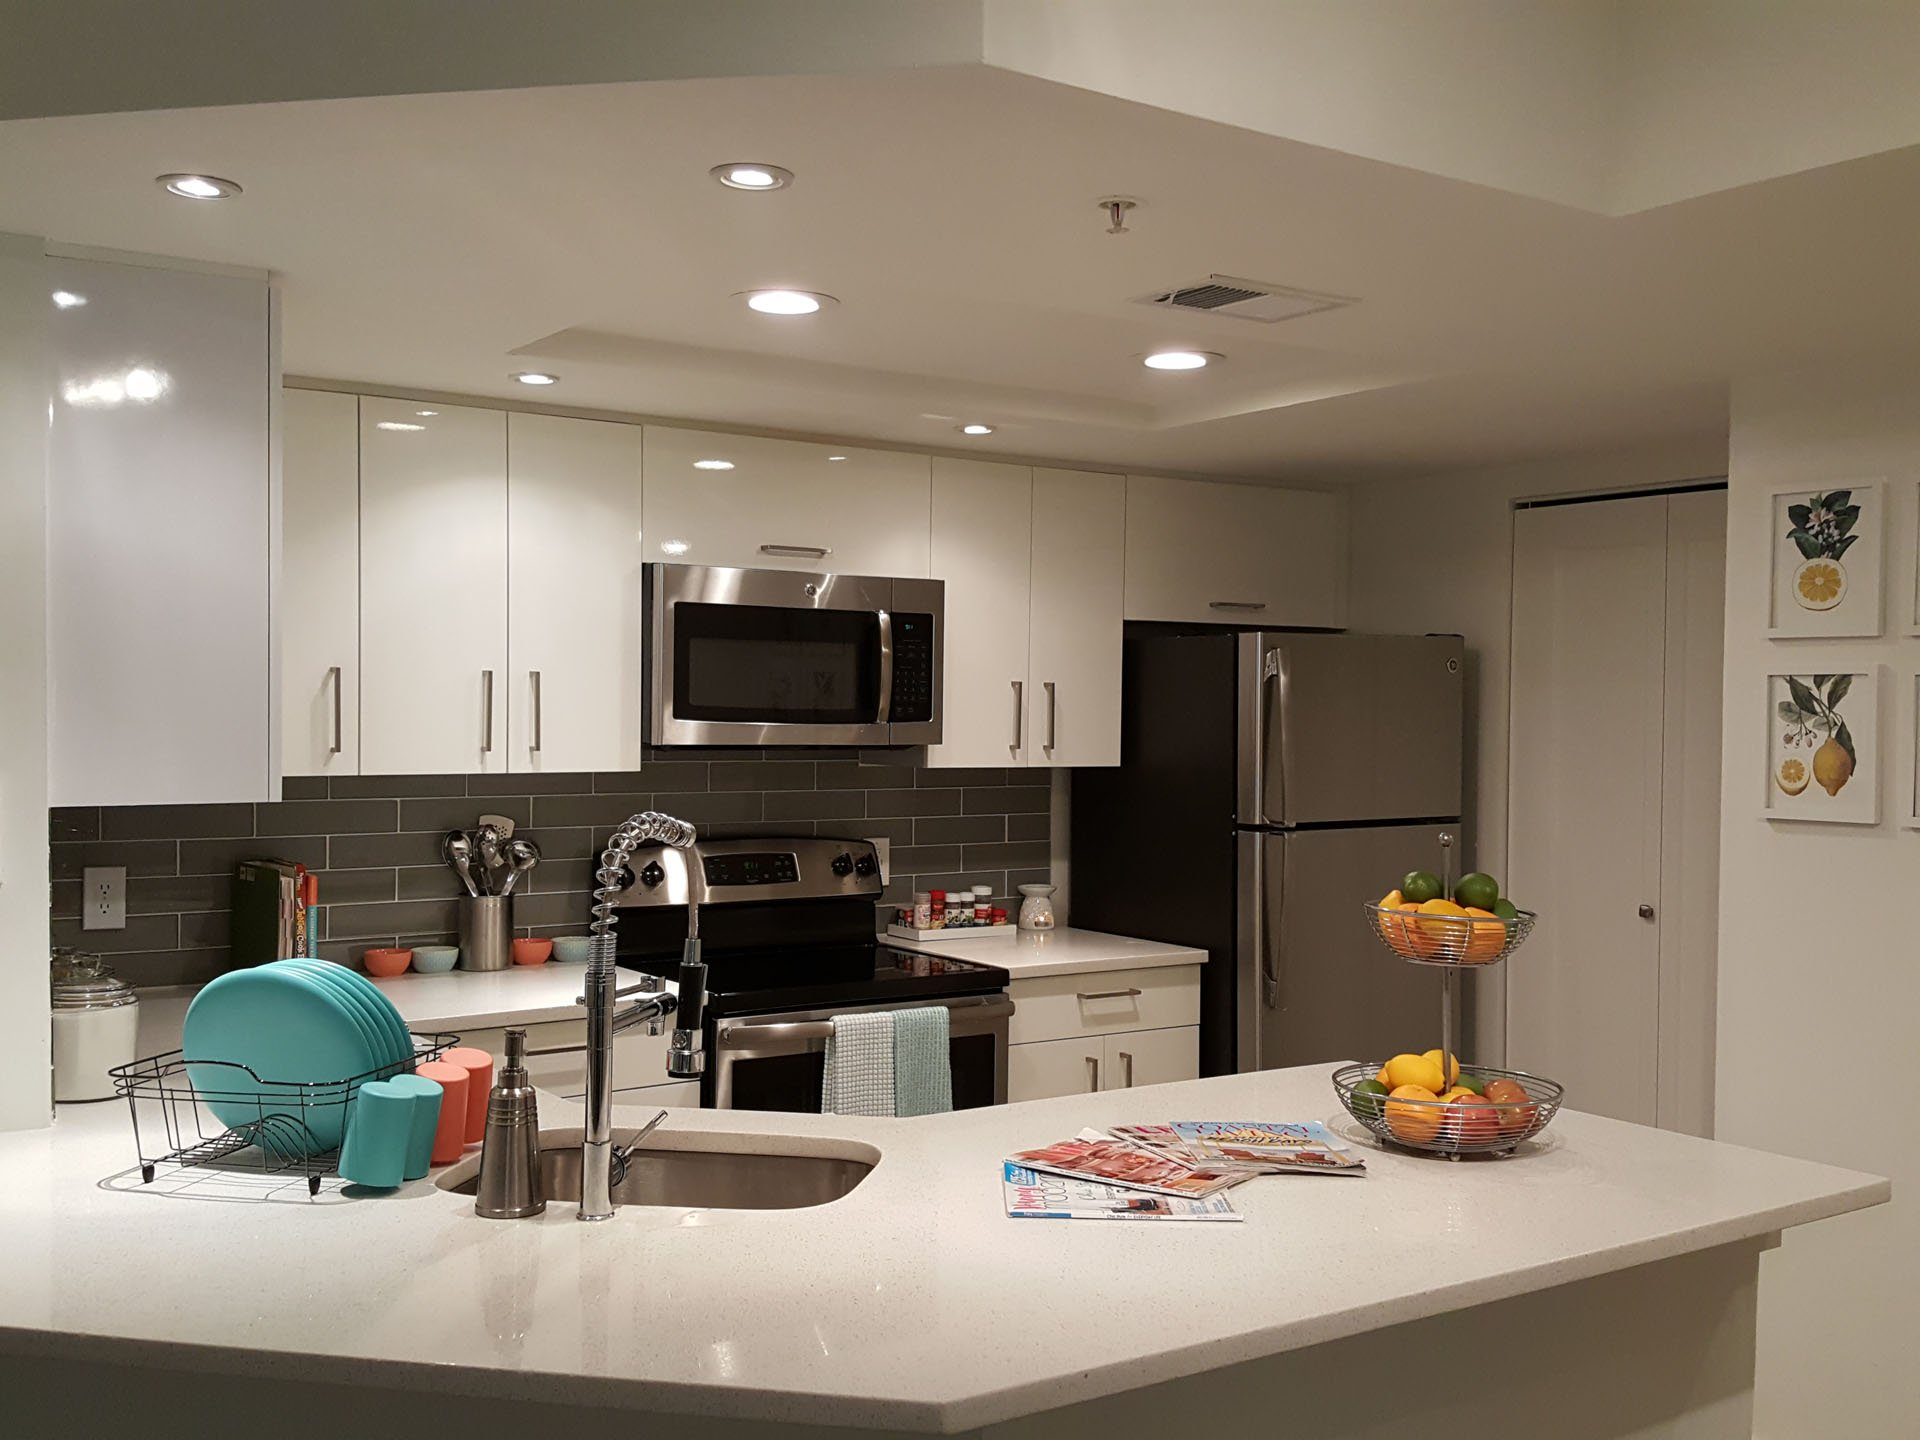 Clean White Kitchen with Organized Countertops and Teal Accents